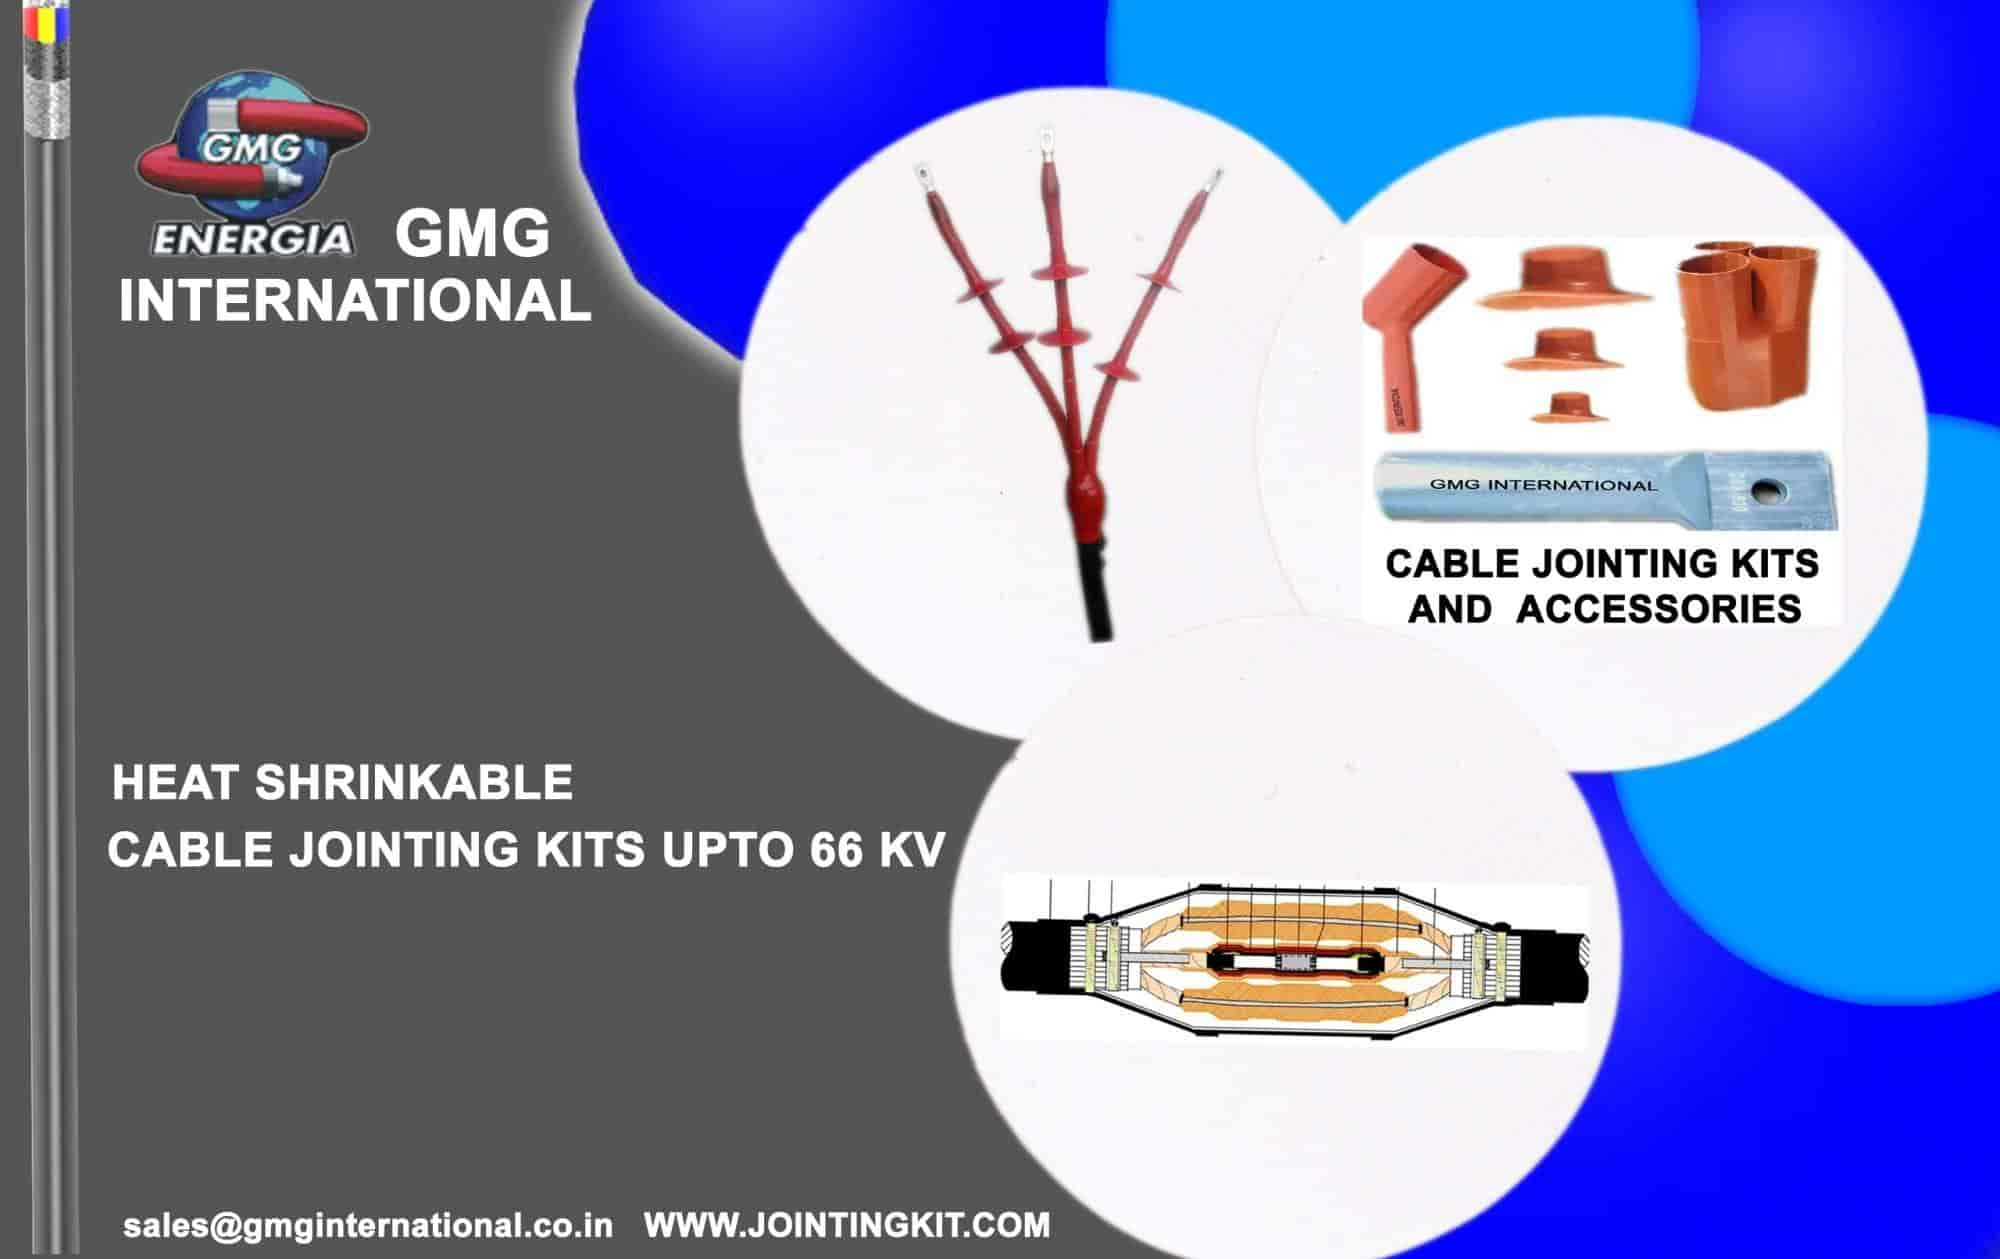 hight resolution of gmg international jagdhari work shop cable jointing kit manufacturers in yamunanagar justdial